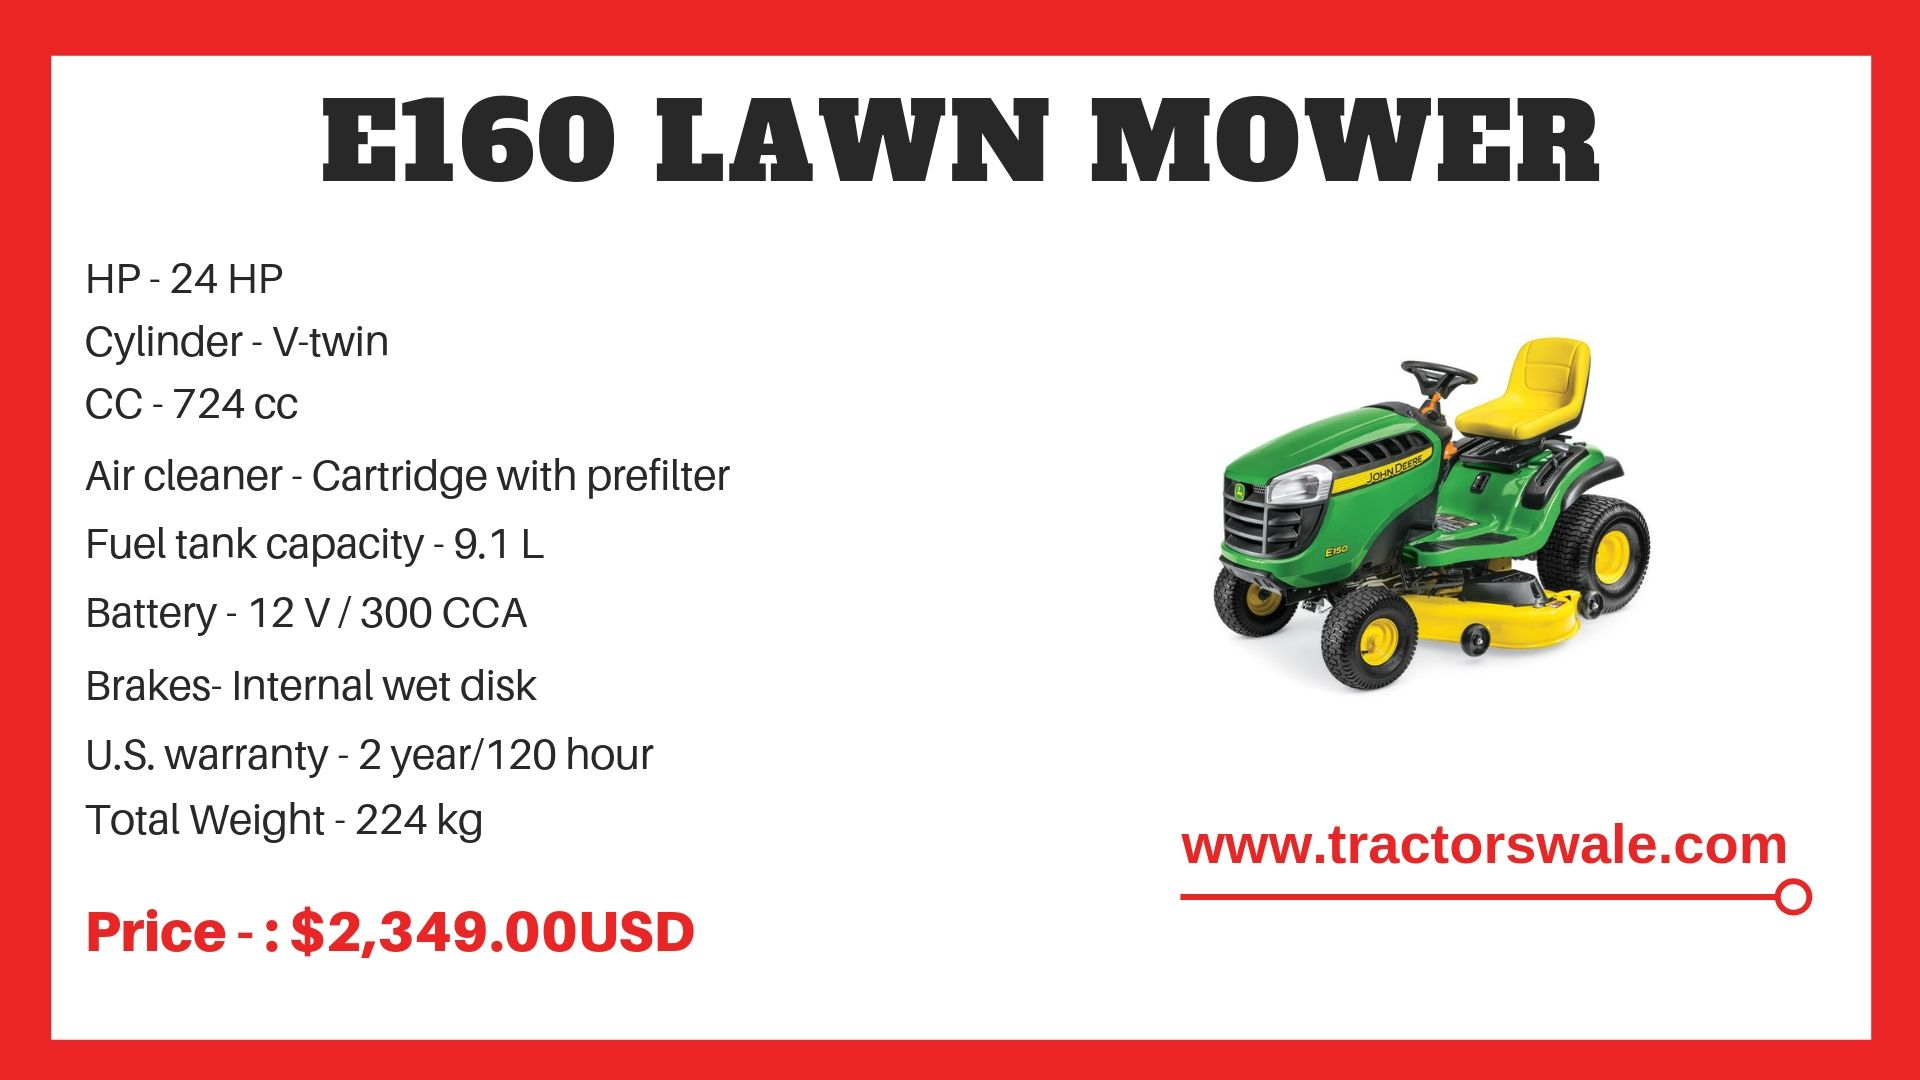 John Deere Tractor e160 Specifications